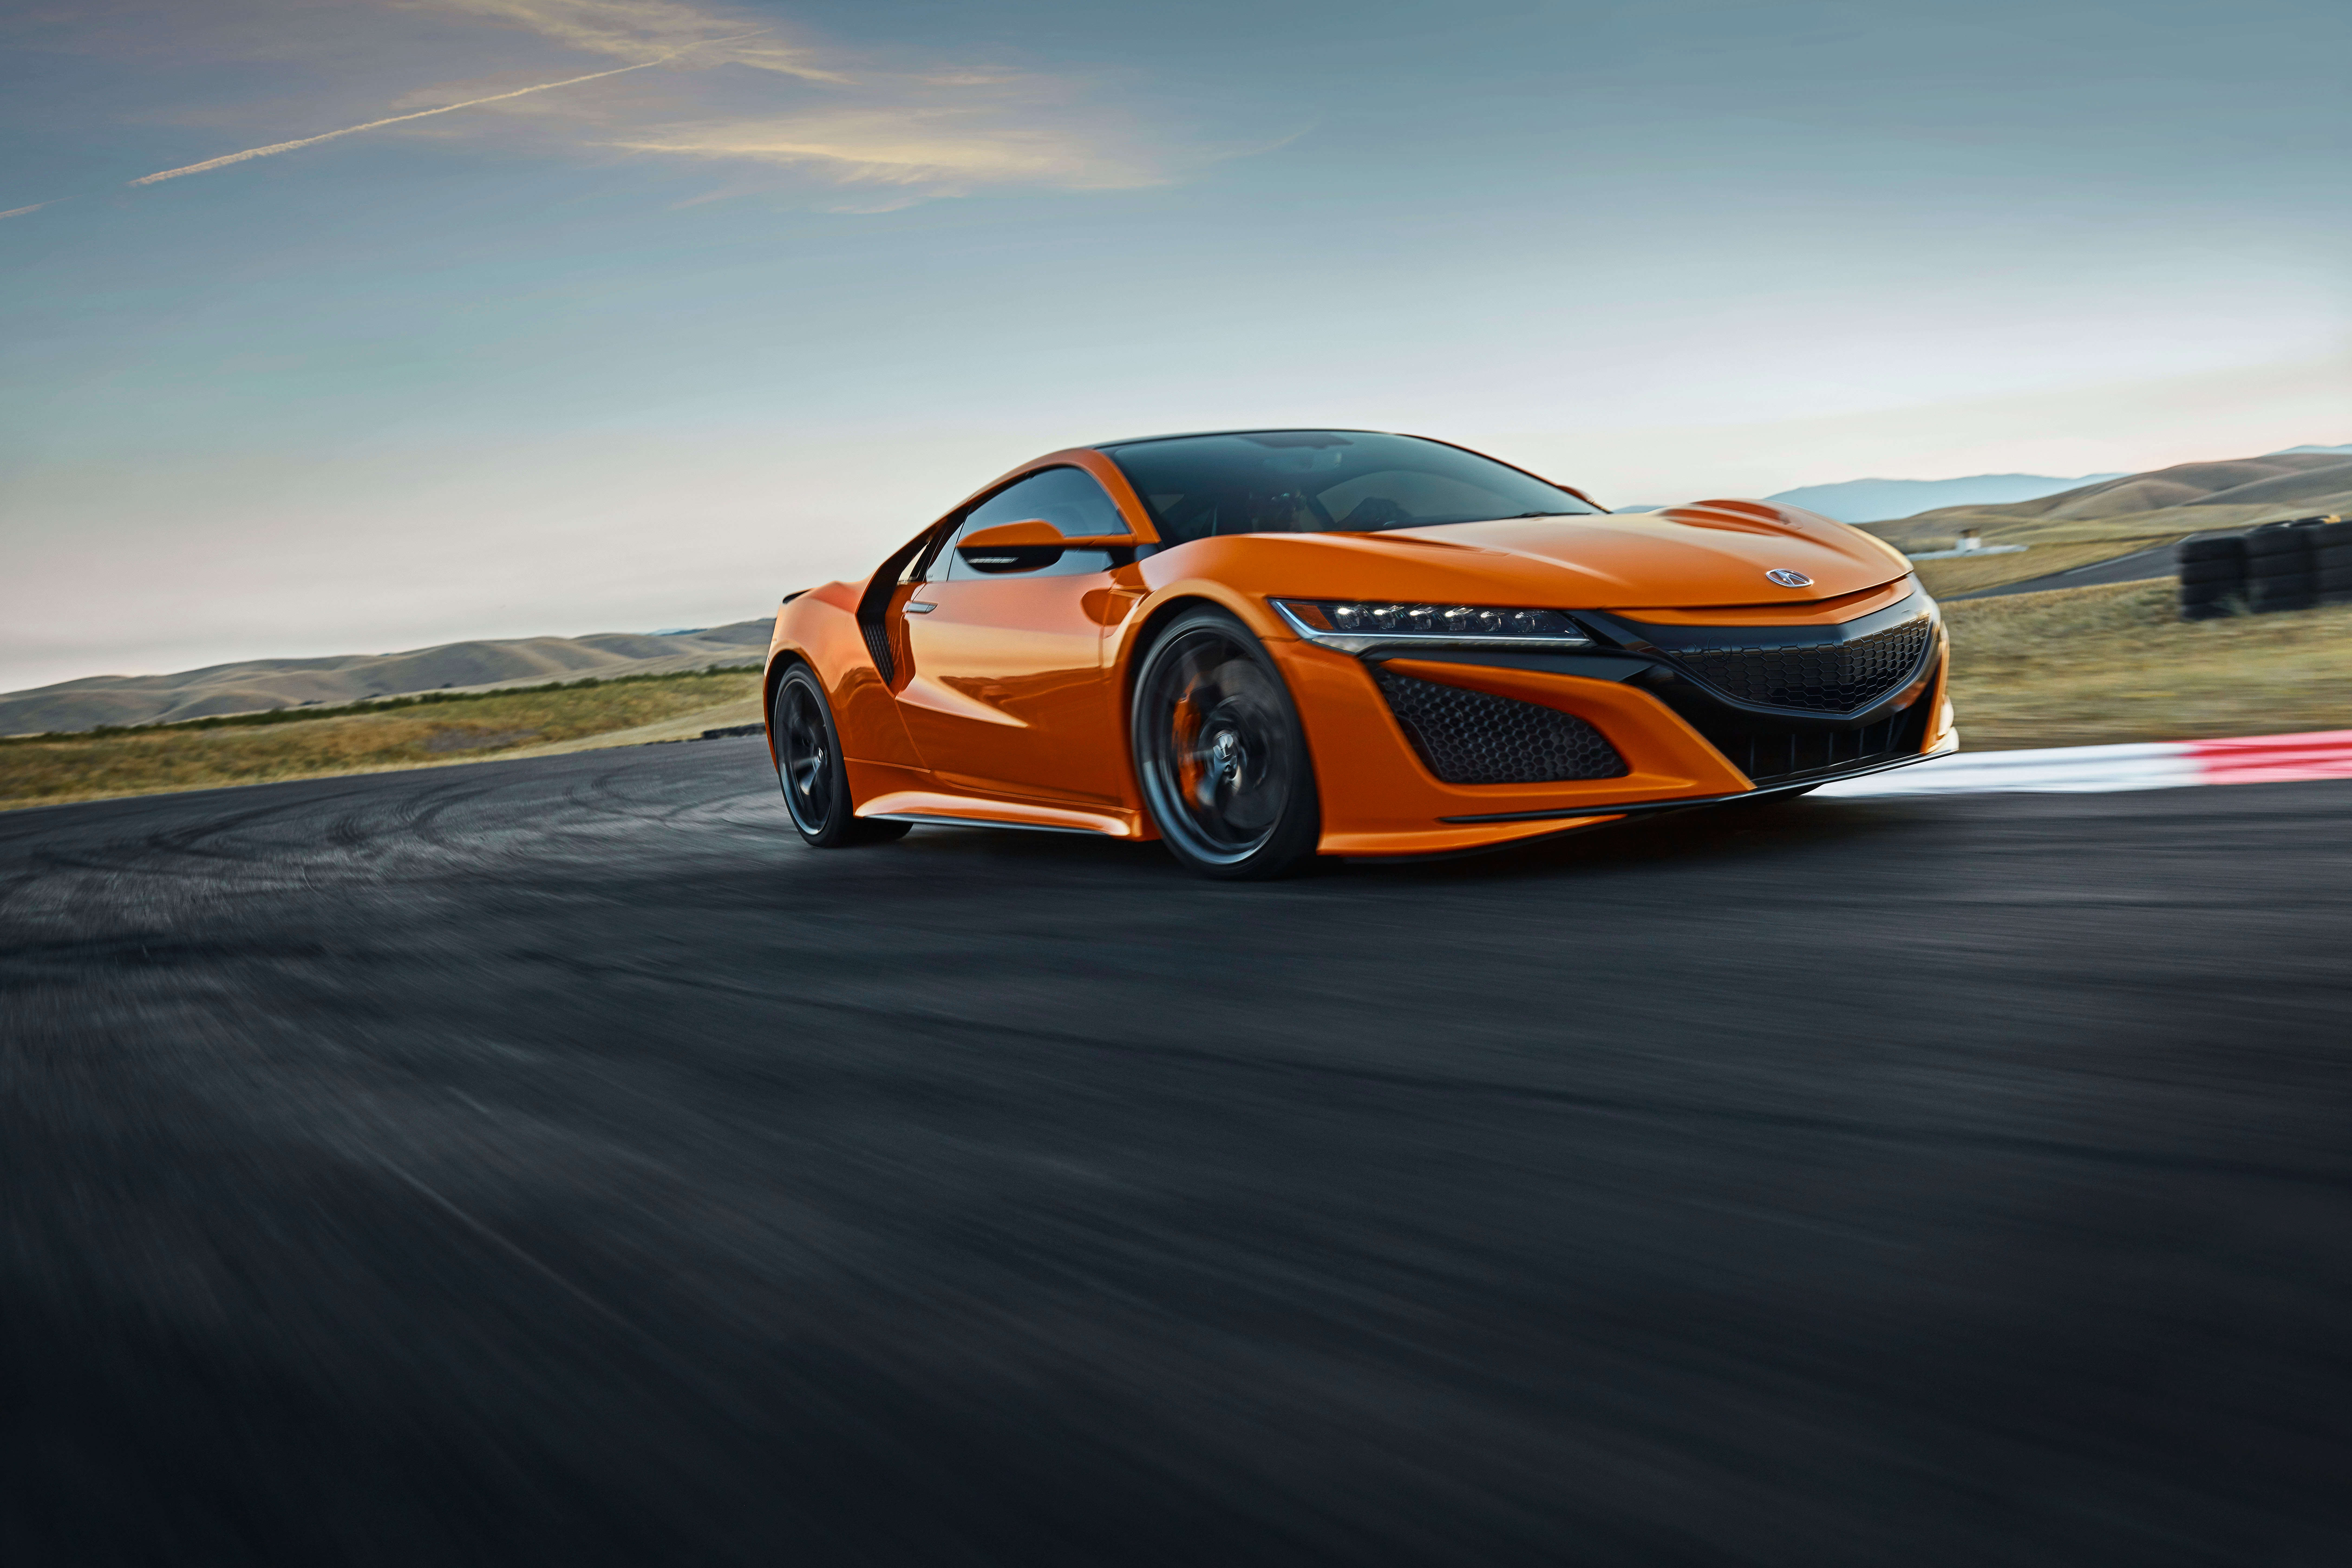 2019 Acura NSX Debuts With More Style and Grip » AutoGuide ...